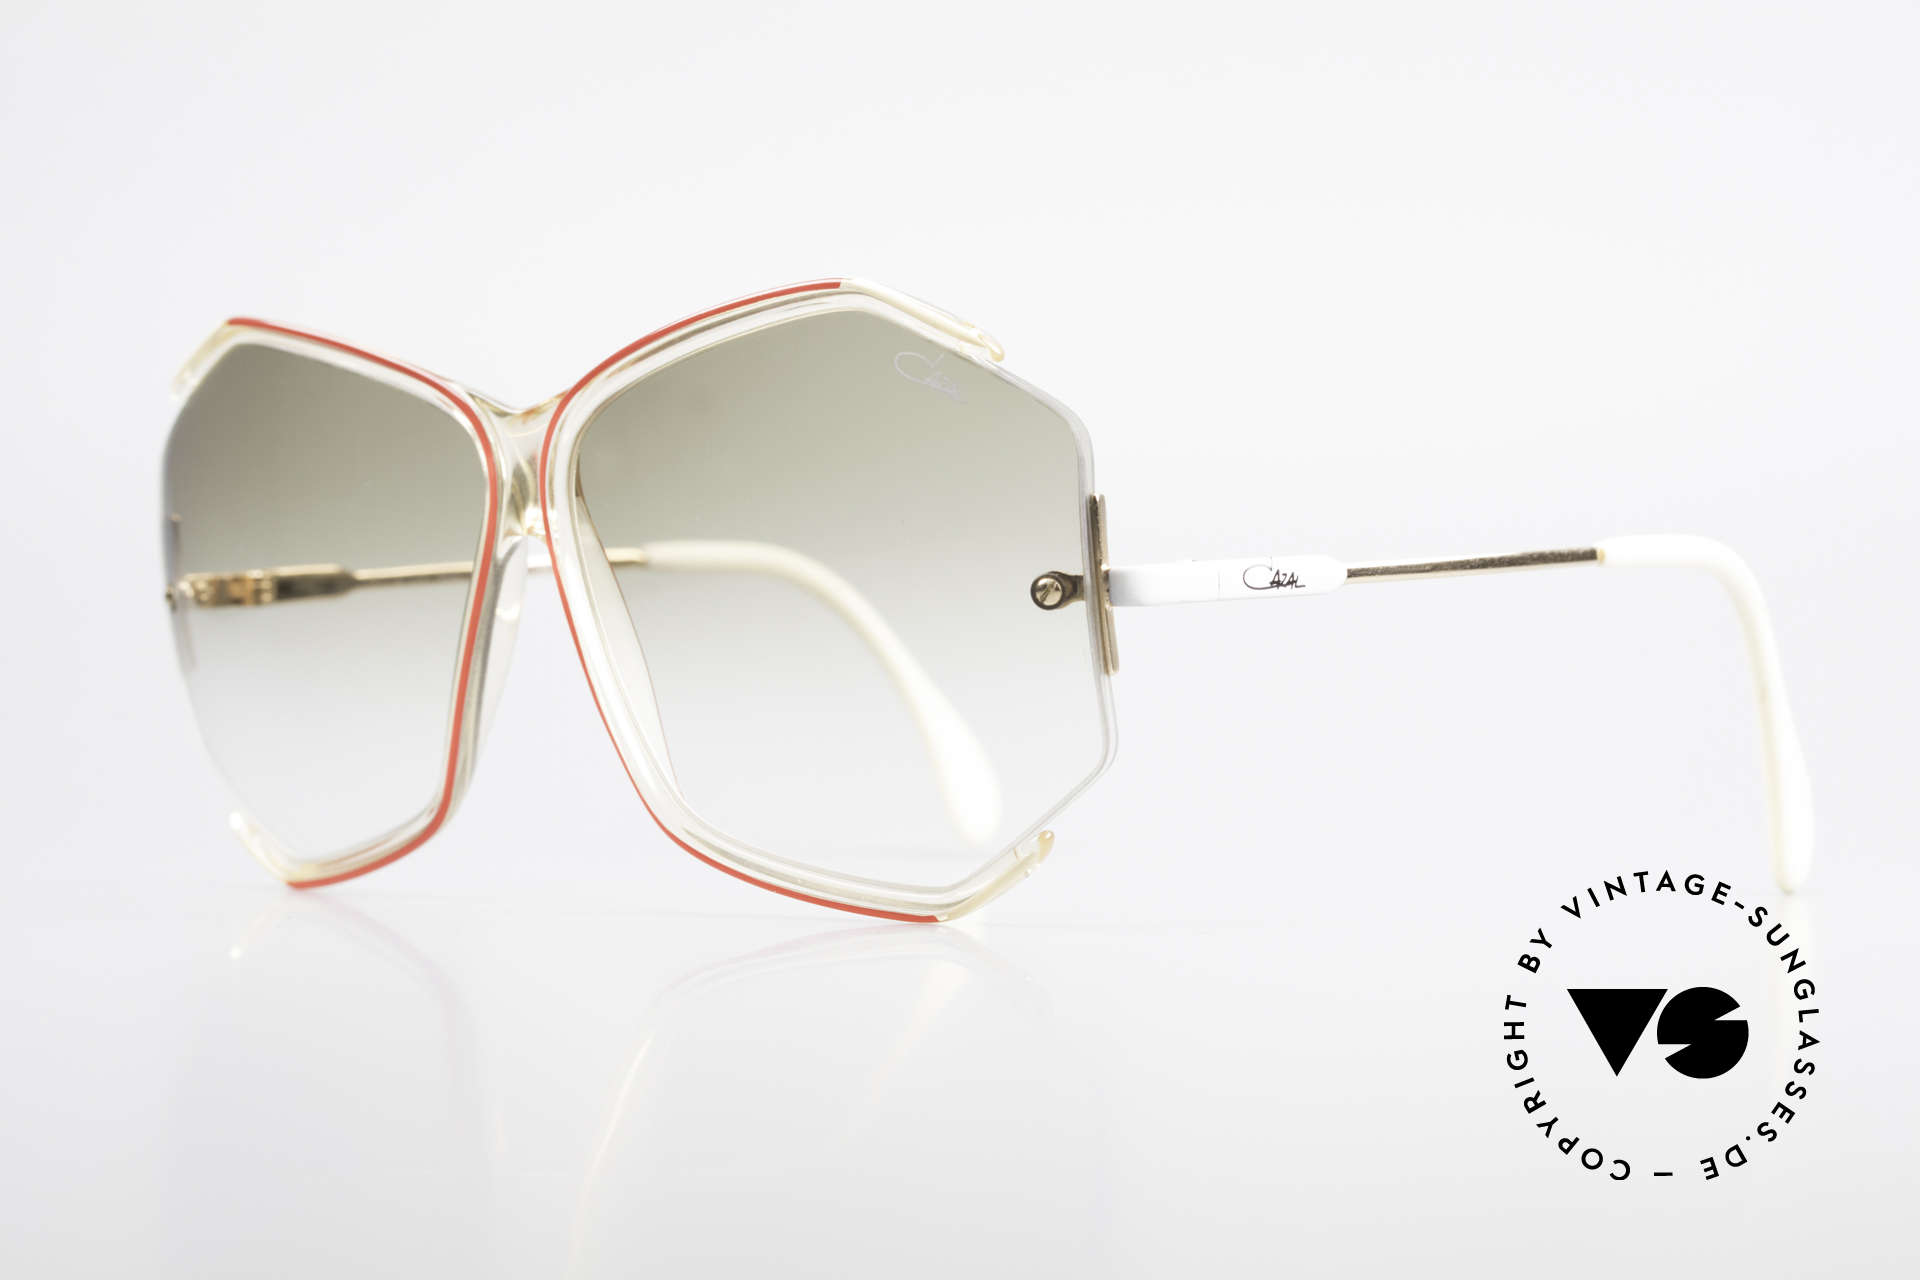 Cazal 852 Vintage 80's Sunglasses XXL, subtly sophisticated (a true masterpiece by CAZAL), Made for Women